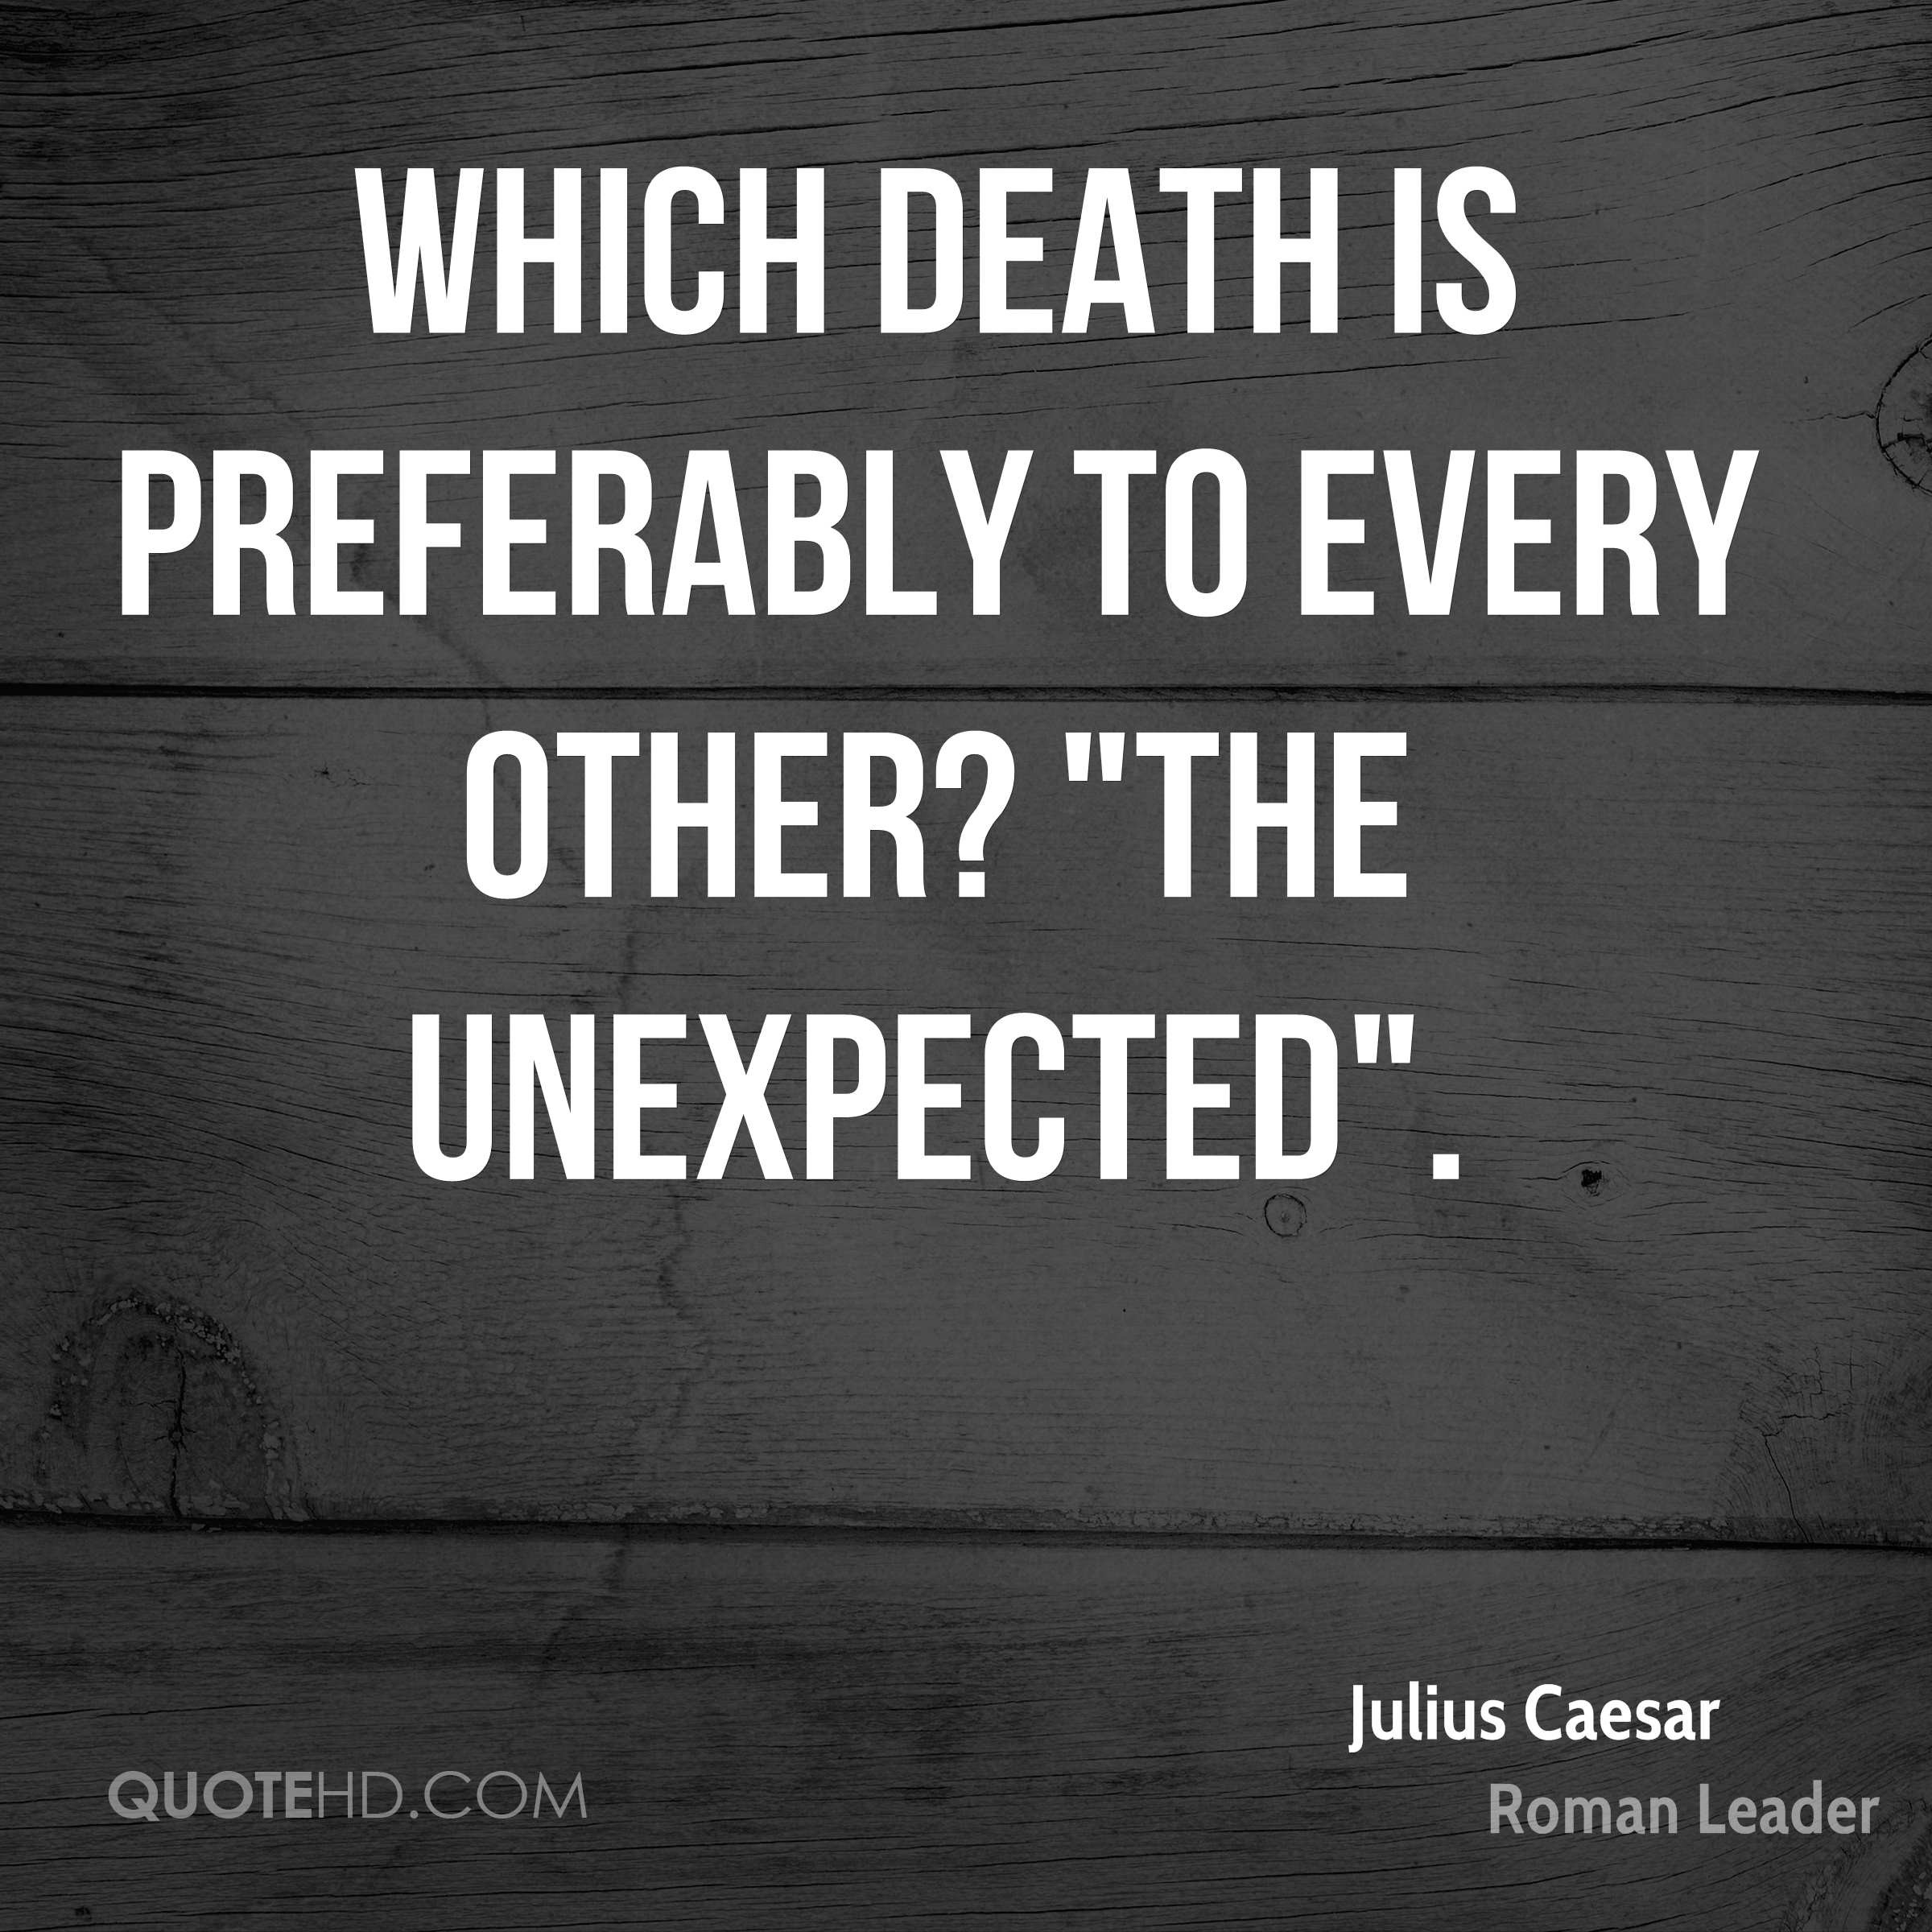 Julius Caesar Leadership Quotes  Julius Caesar Death Quotes